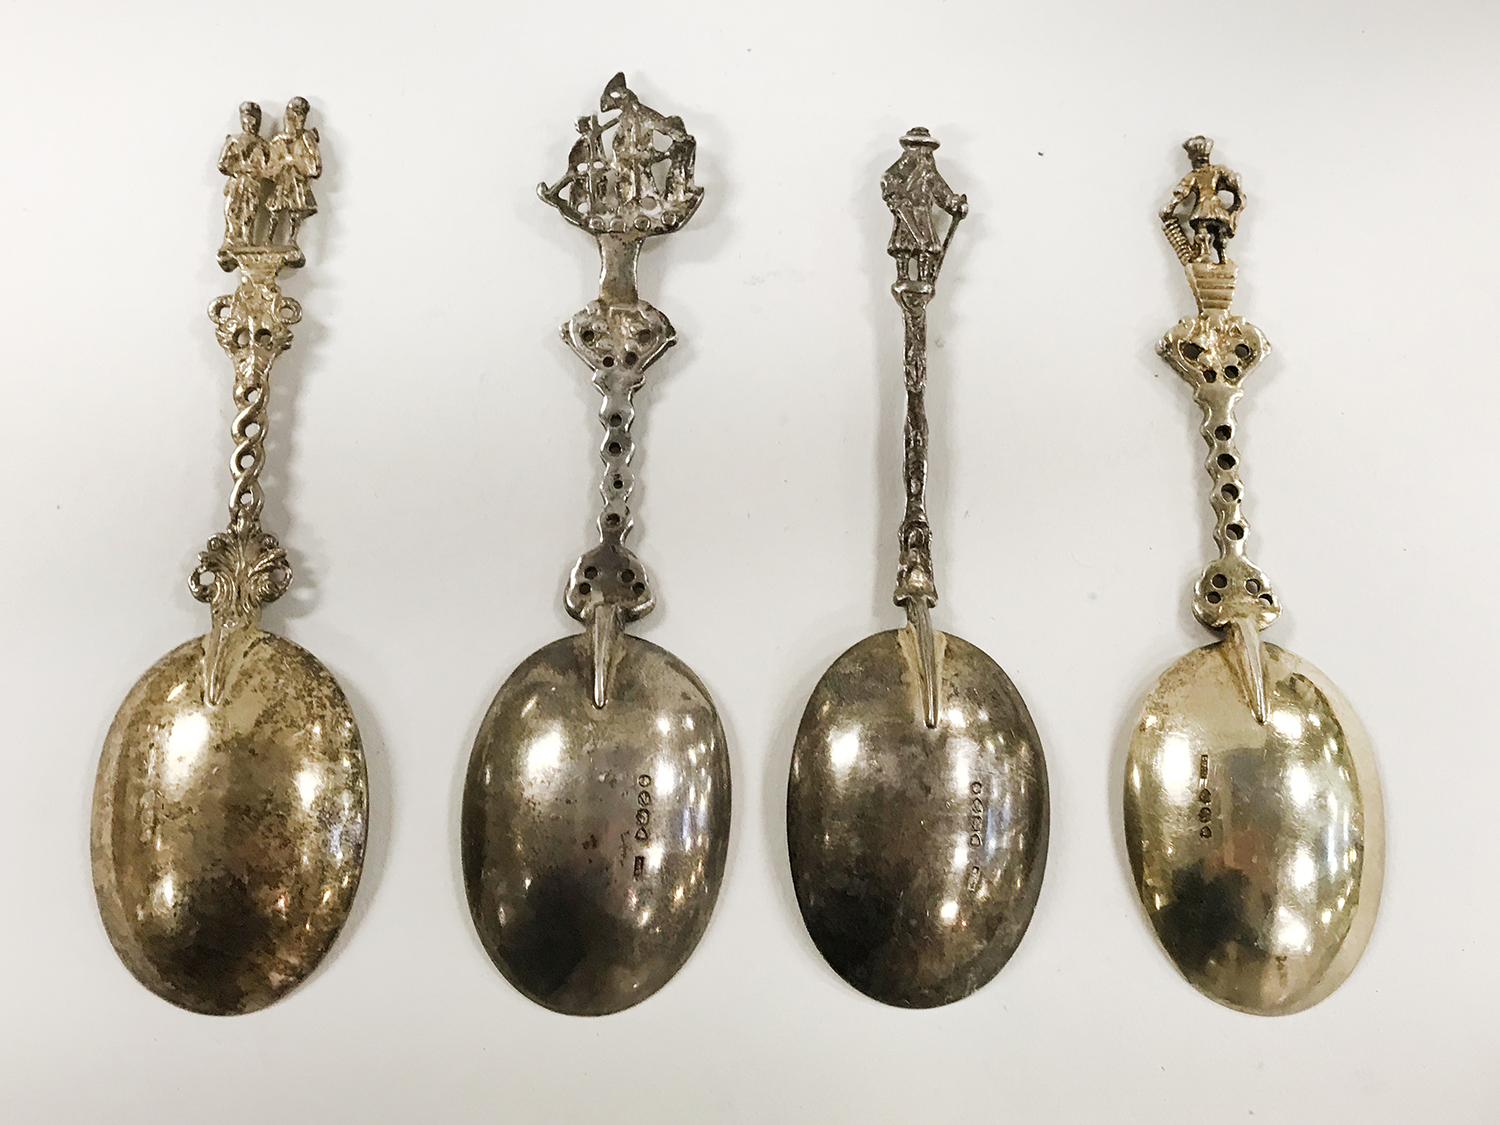 FOUR EARLY HM SILVER FIGURAL SPOONS - Image 2 of 4